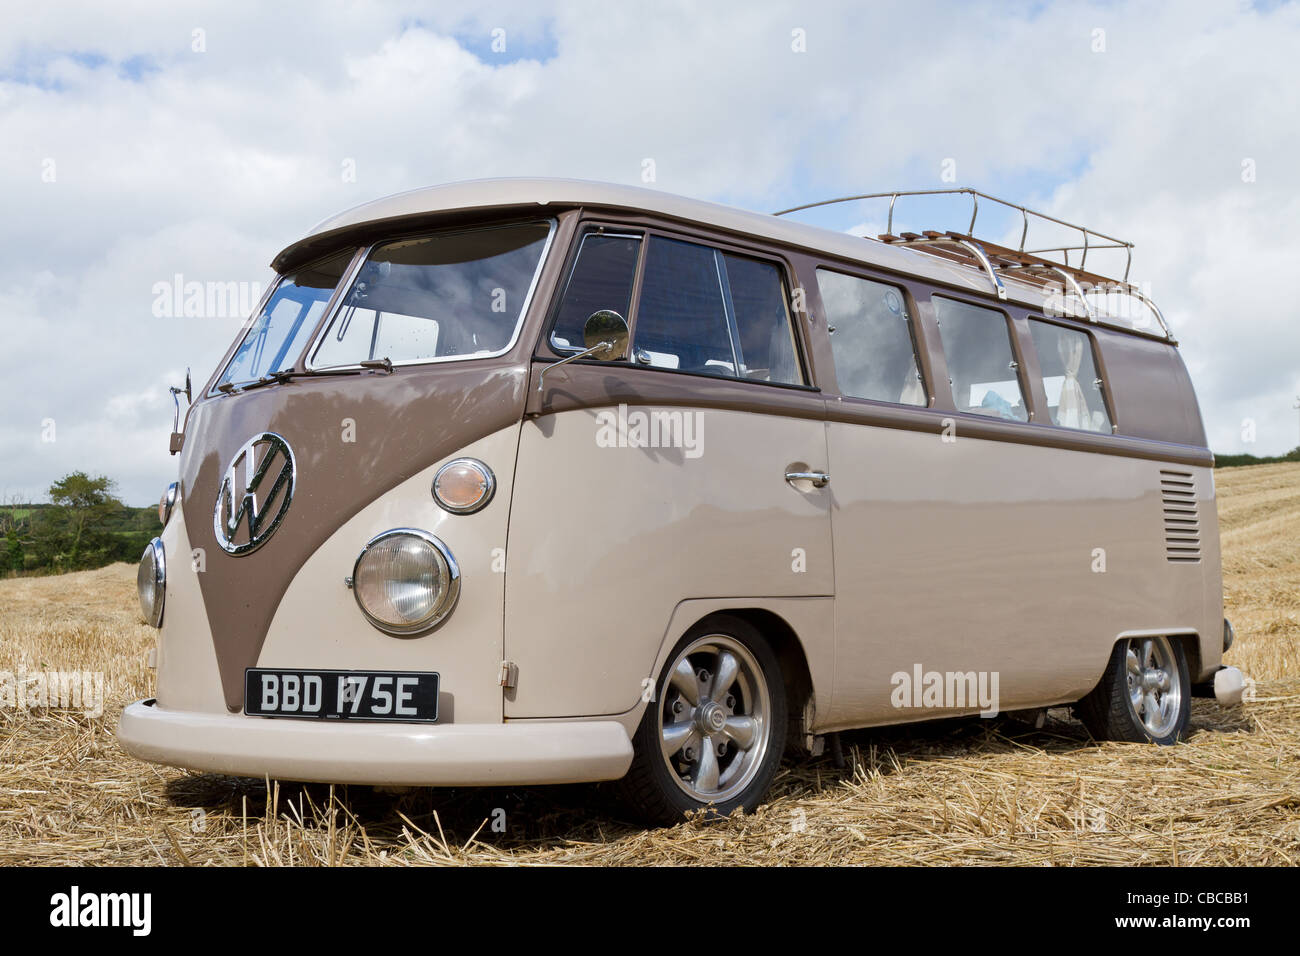 A lowered 1966 Split Screen VW Campervan, taken in a cornfield in Cornwall on a sunny day - Stock Image